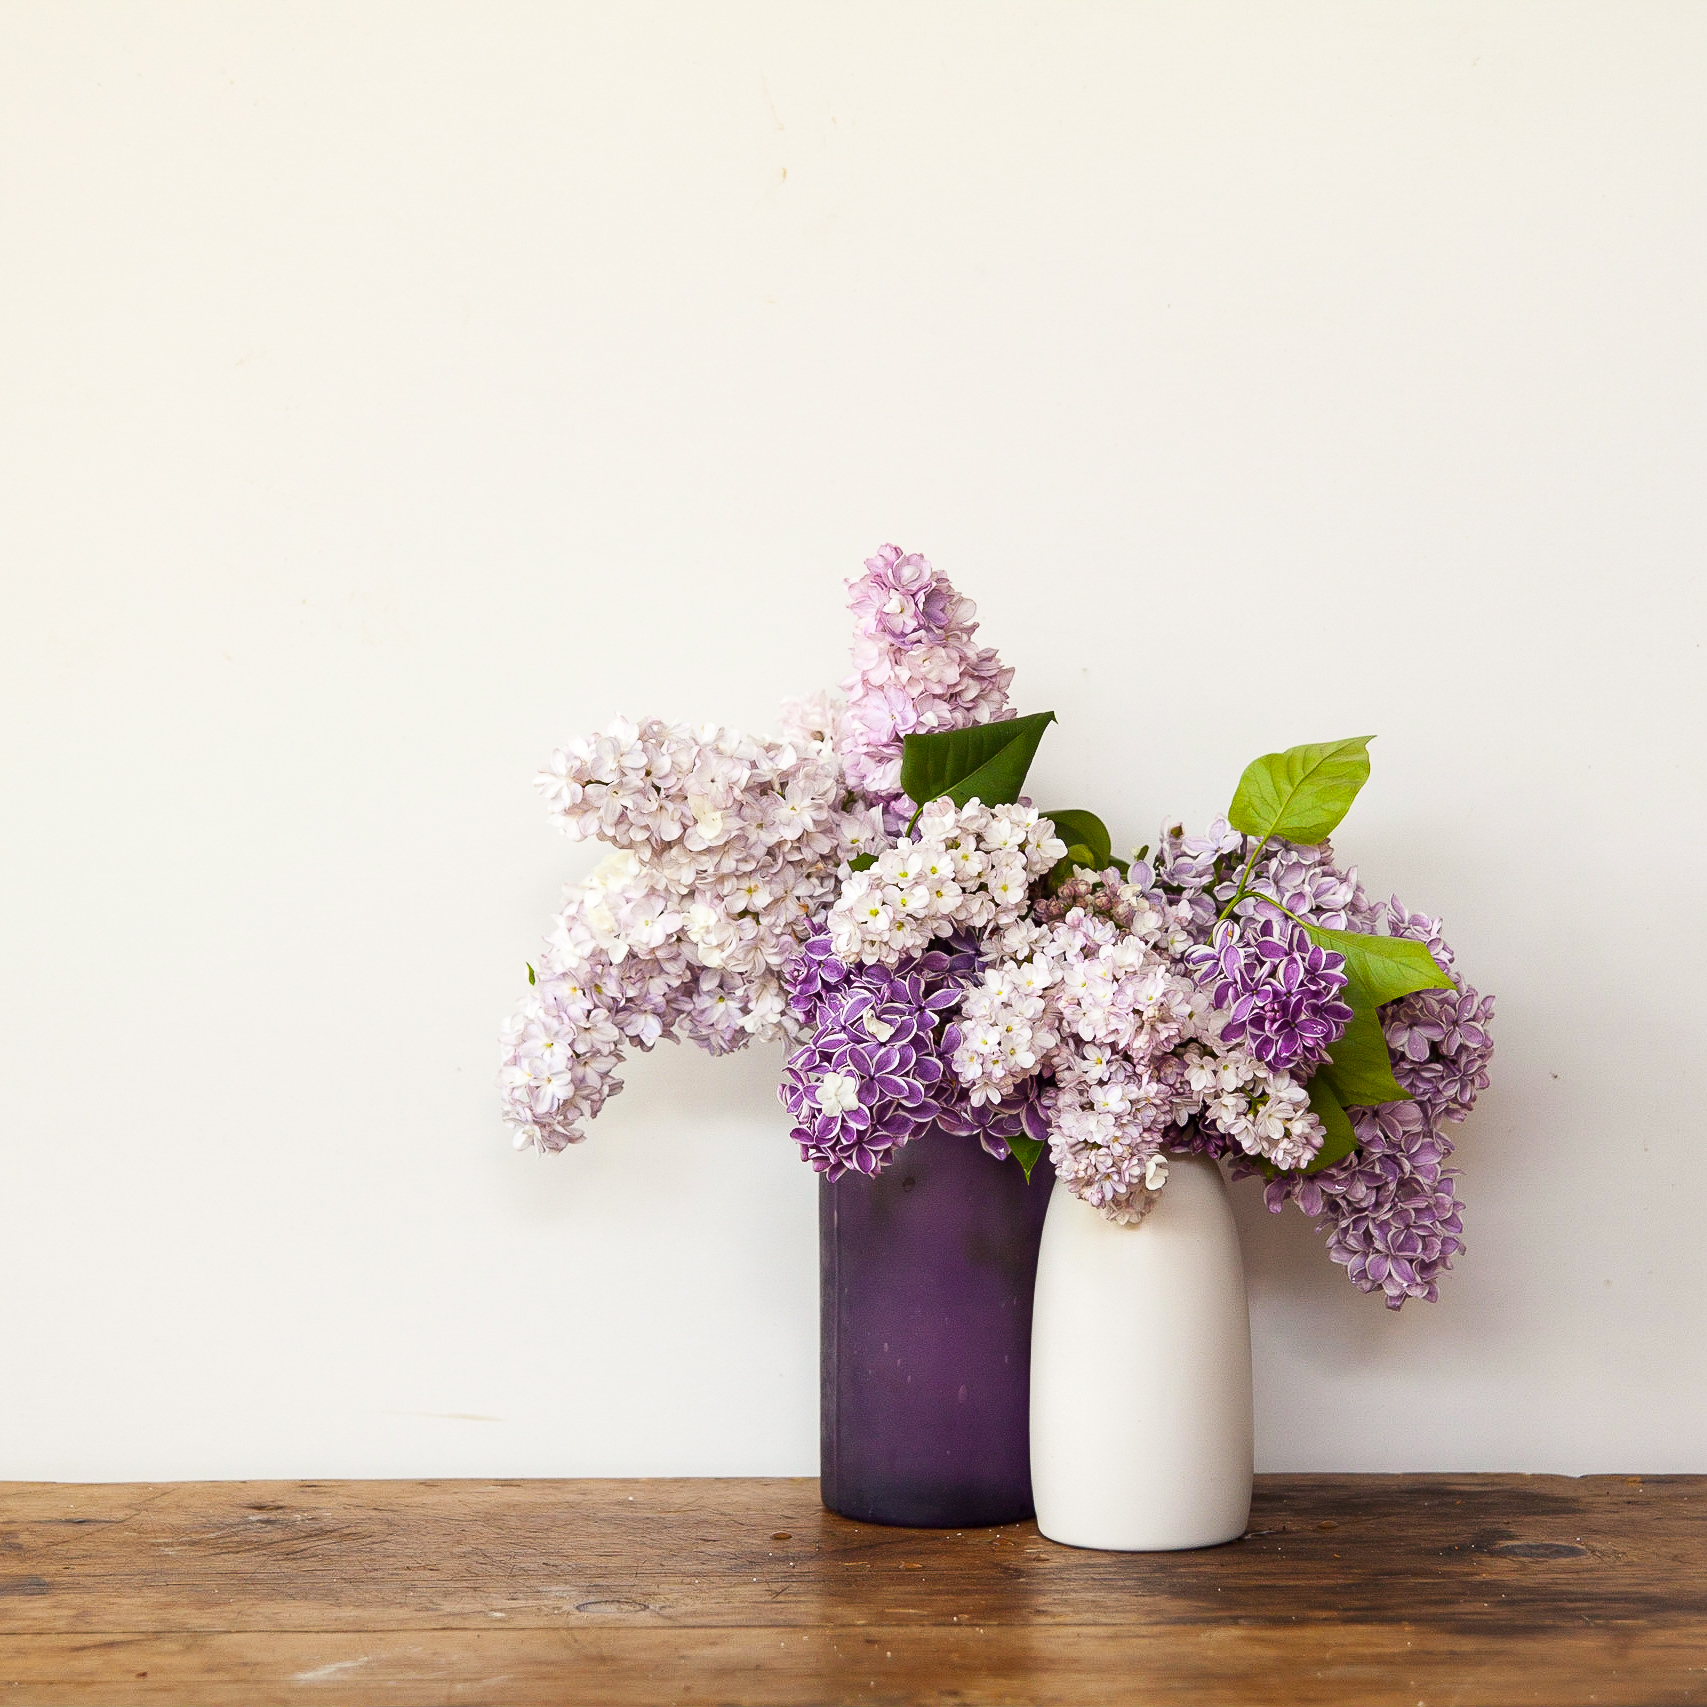 Lilac Dreams – a photo essay | Foraged and collected on flower love, flower reflection, flower business, flower scene, flower presentation, flower composition, flower poster, flower reference, flower description,